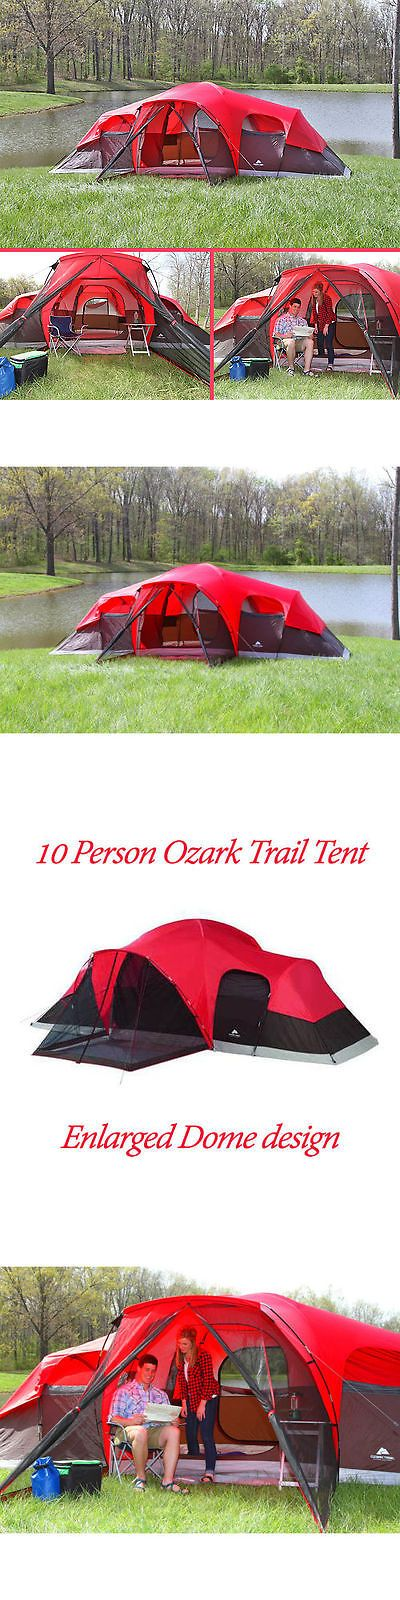 Tents 179010: Camping Tent 10 Person Large Cabin Easy Setup Family Shelter Hiking Outdoor New -> BUY IT NOW ONLY: $118.2 on eBay!